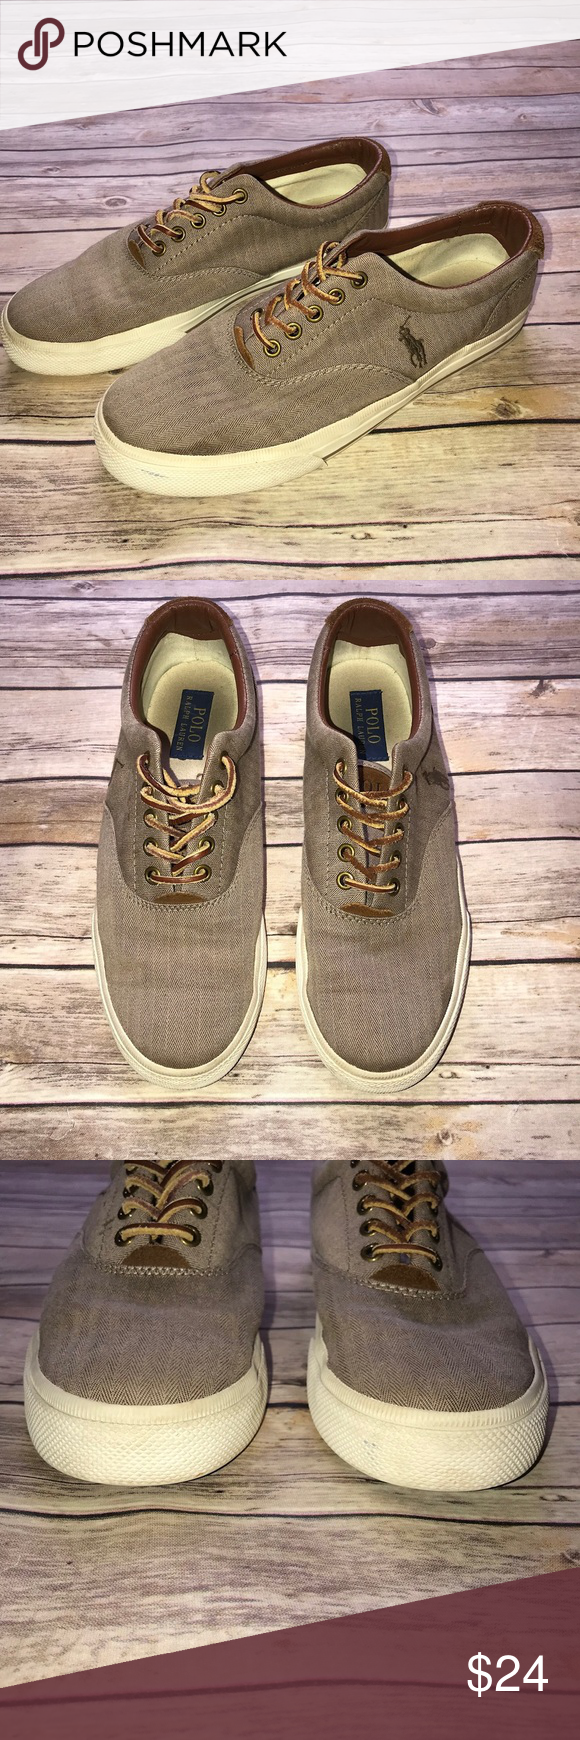 9a8e428d2060 Mens Polo Ralph Lauren Vaughn Canvas Shoes Brown canvas slip on shoes in  very good condition